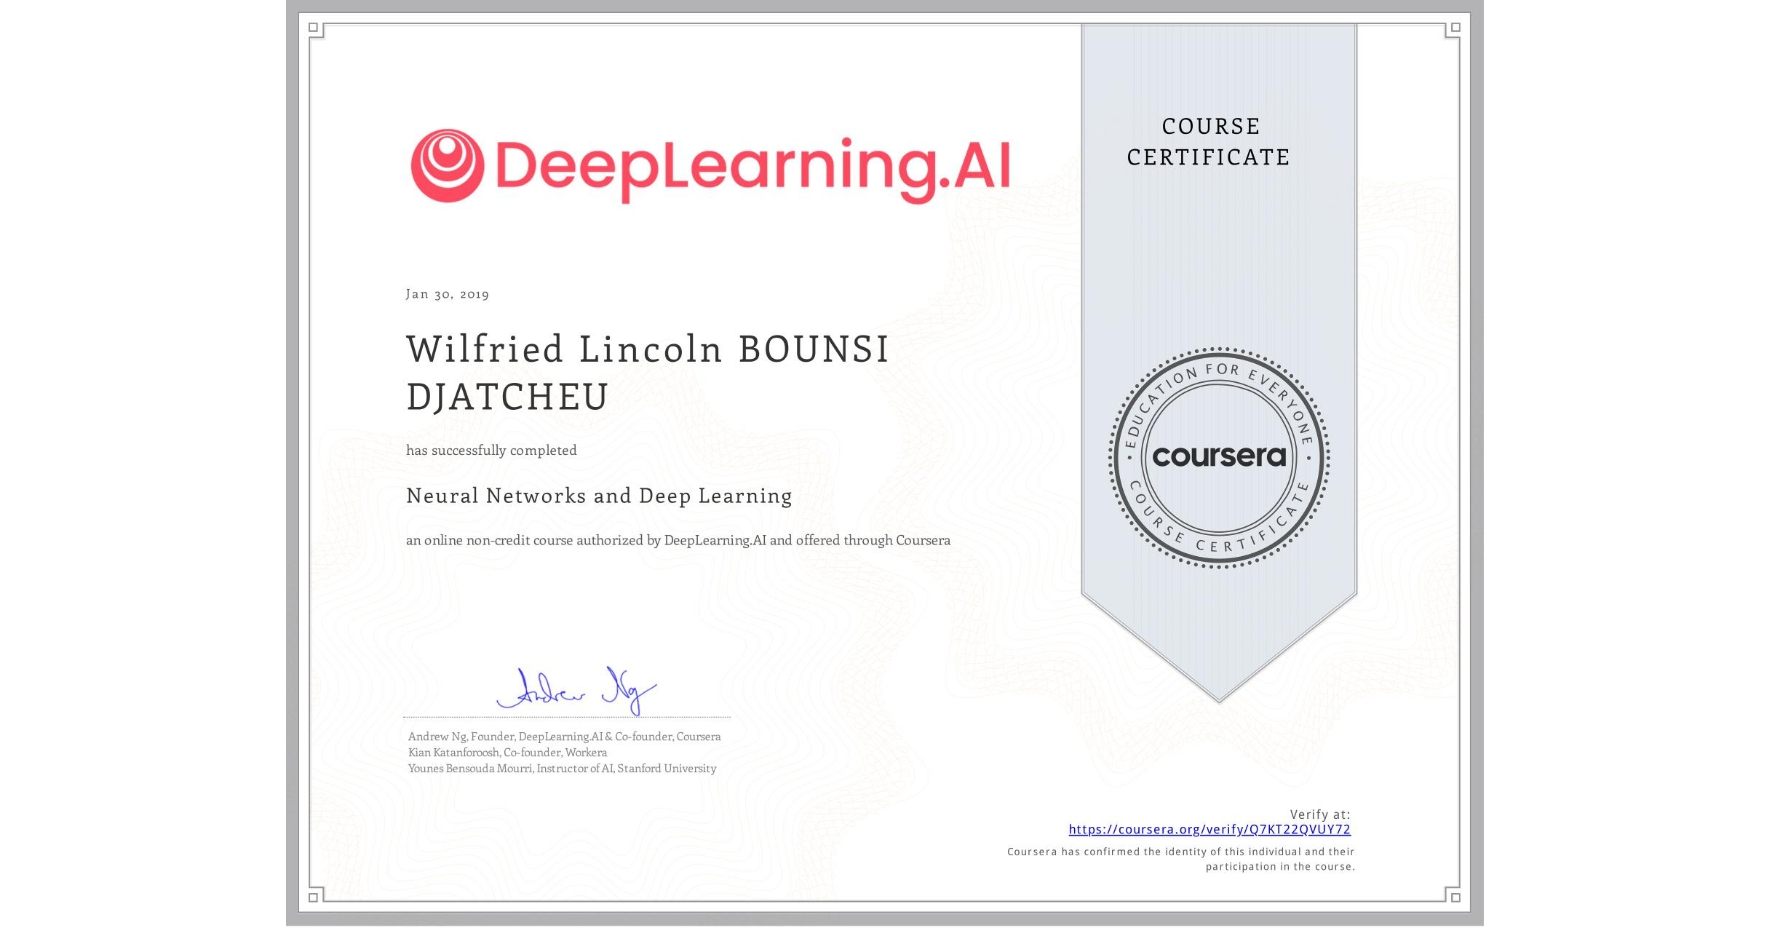 View certificate for Wilfried Lincoln BOUNSI DJATCHEU, Neural Networks and Deep Learning, an online non-credit course authorized by DeepLearning.AI and offered through Coursera